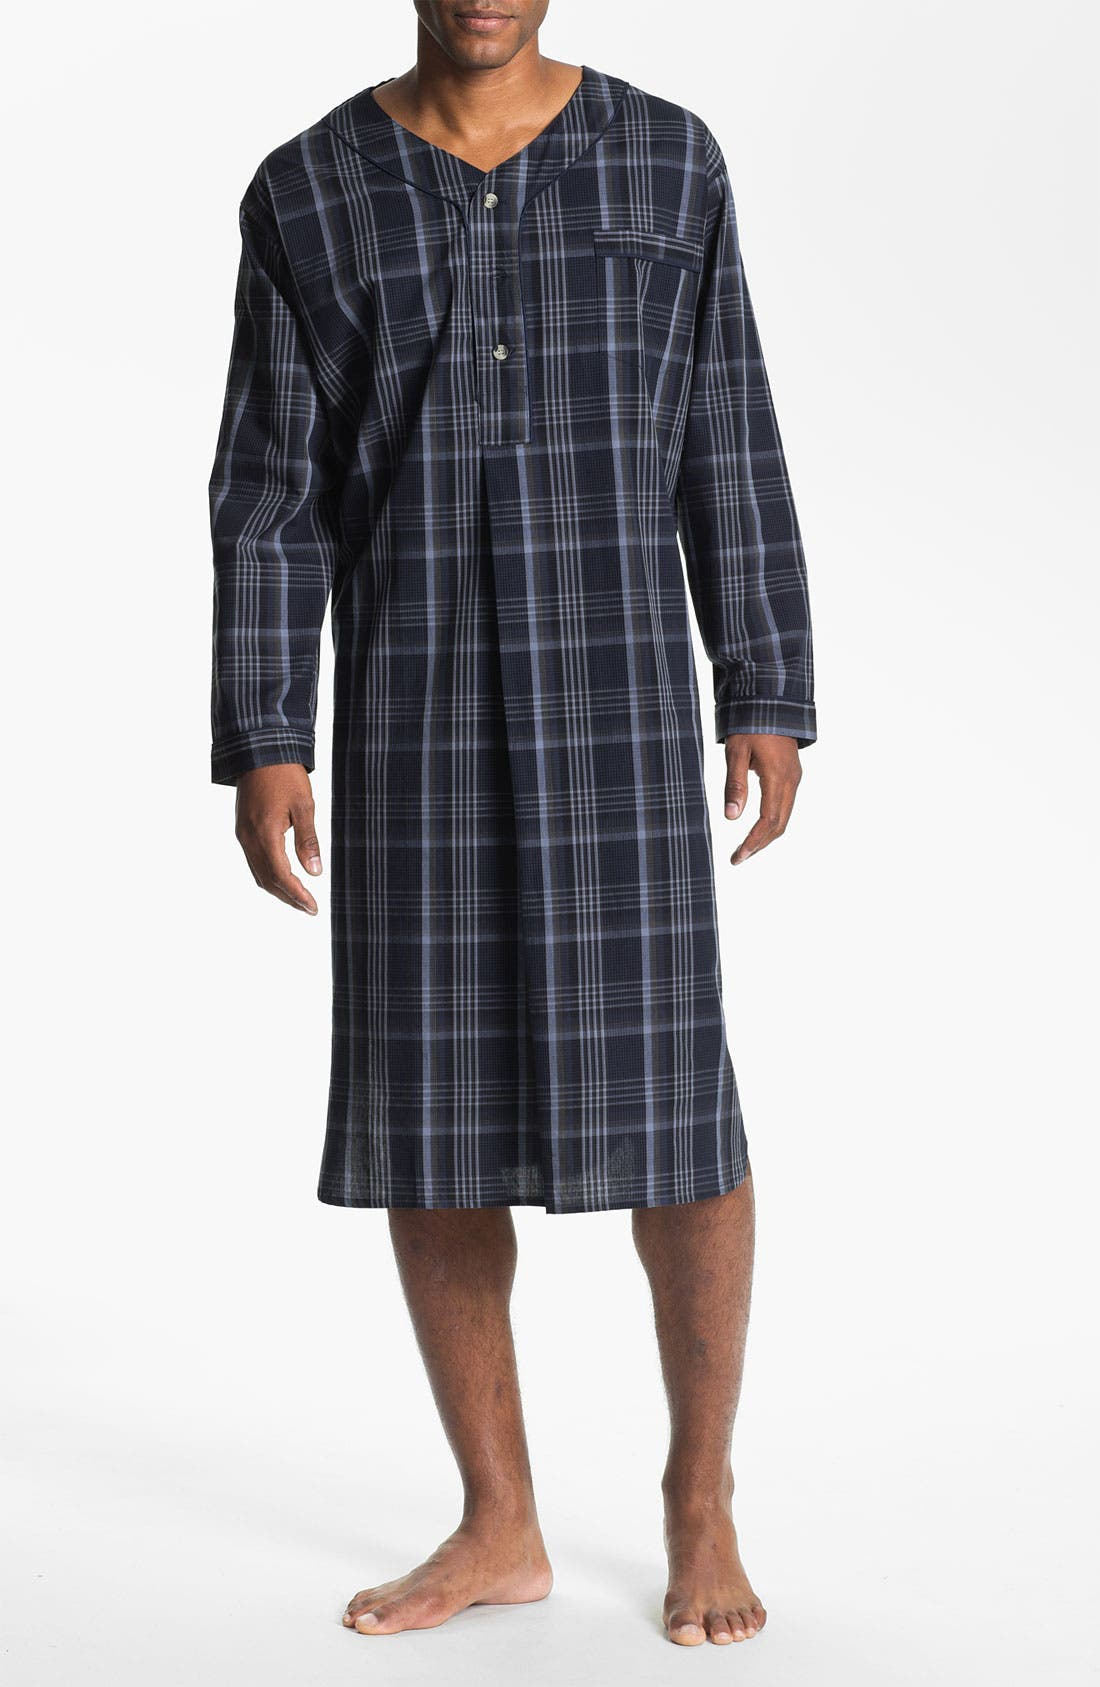 Alternate Image 1 Selected - Majestic International Plaid Nightshirt (Big & Tall)